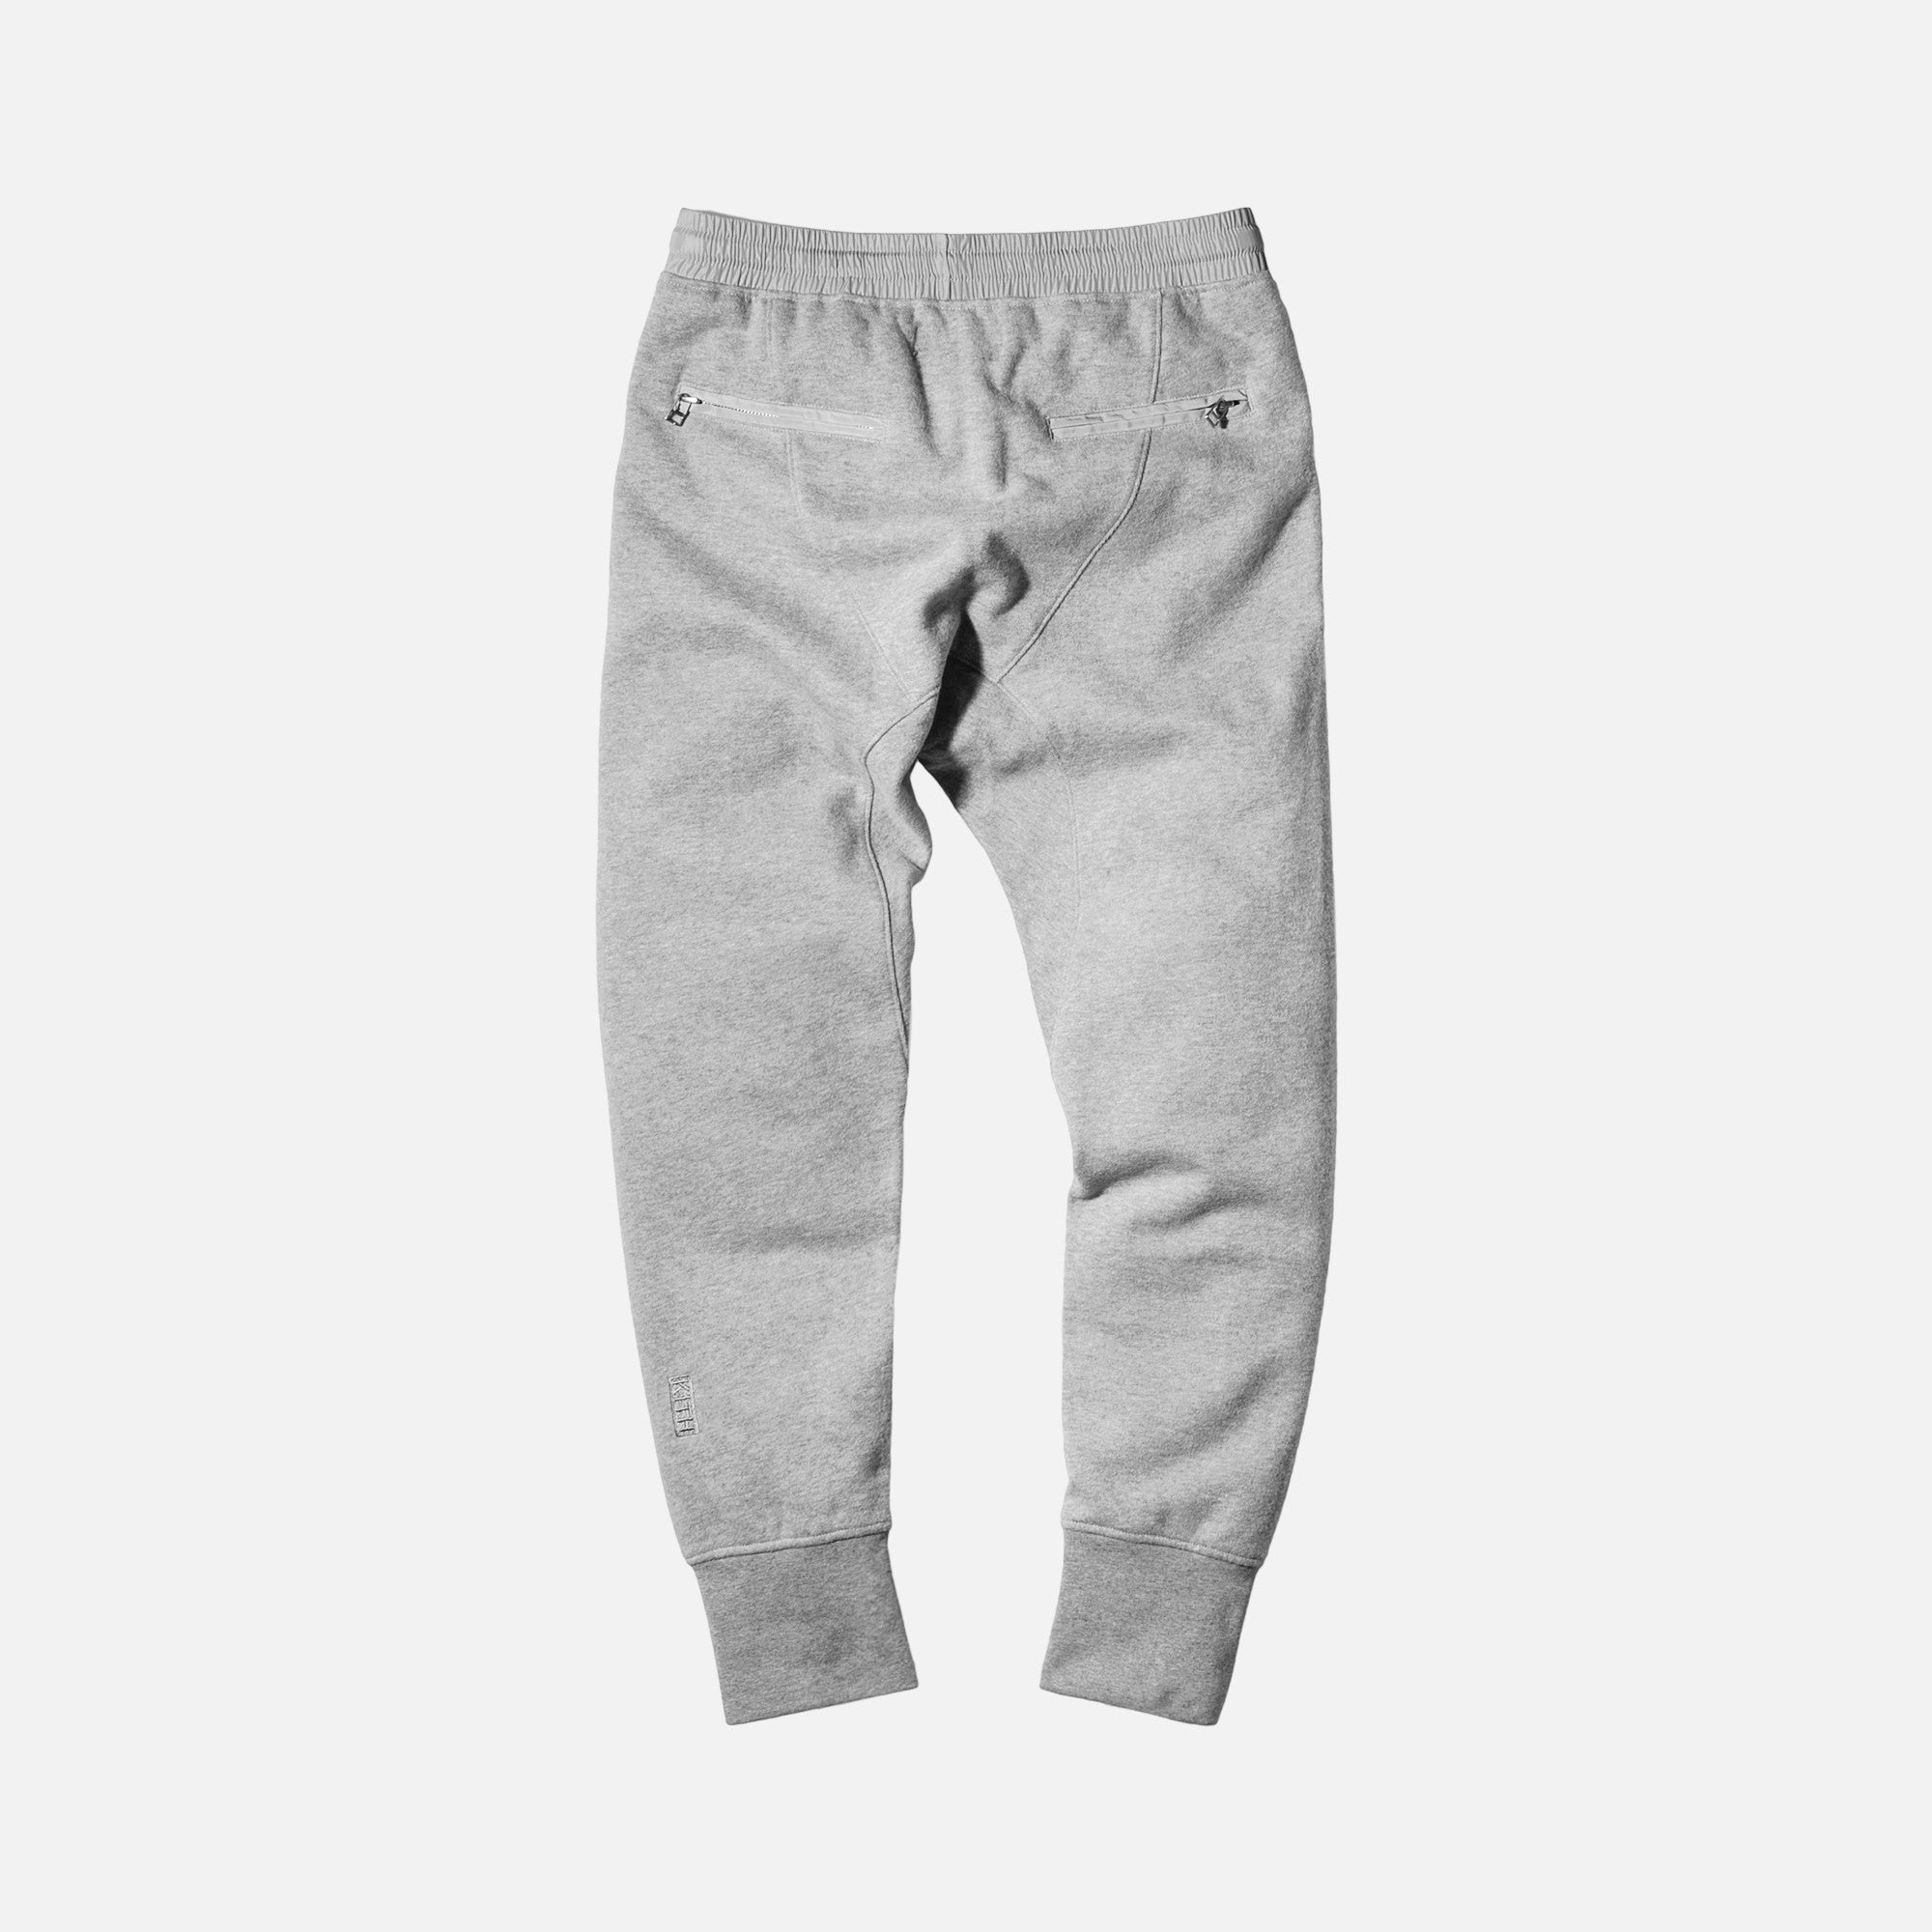 Kith Bleecker Sweatpant - Heather Grey